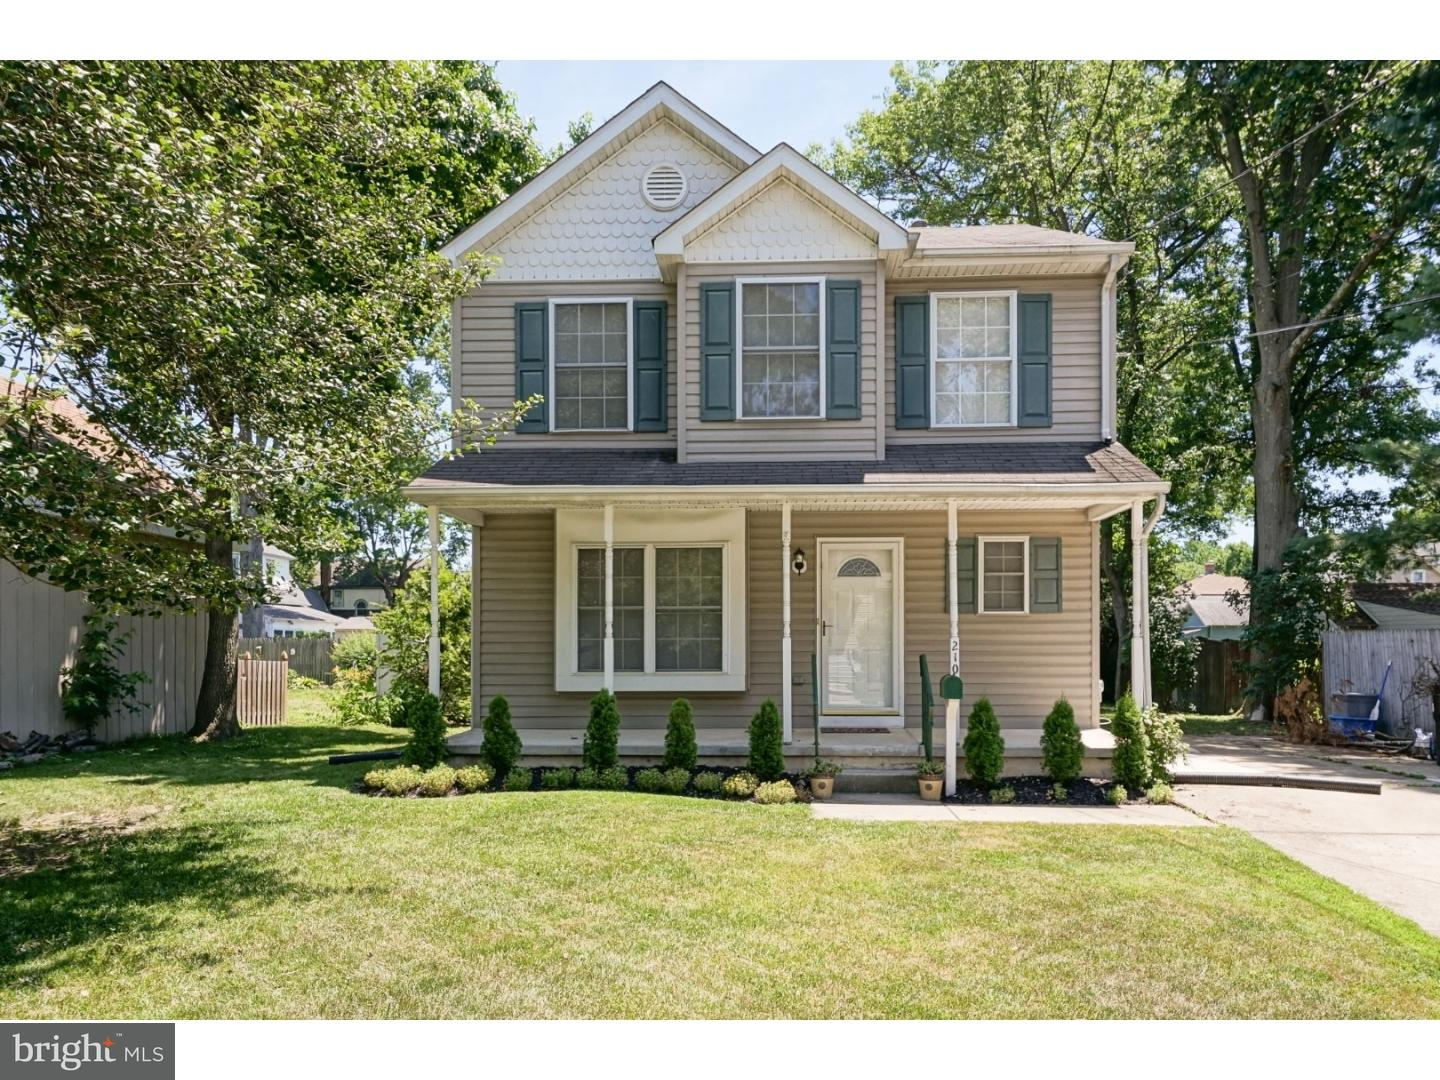 210 Conard Ave Collingswood Nj 08108 Home For Sale Mls 1001988128 Realtytrac